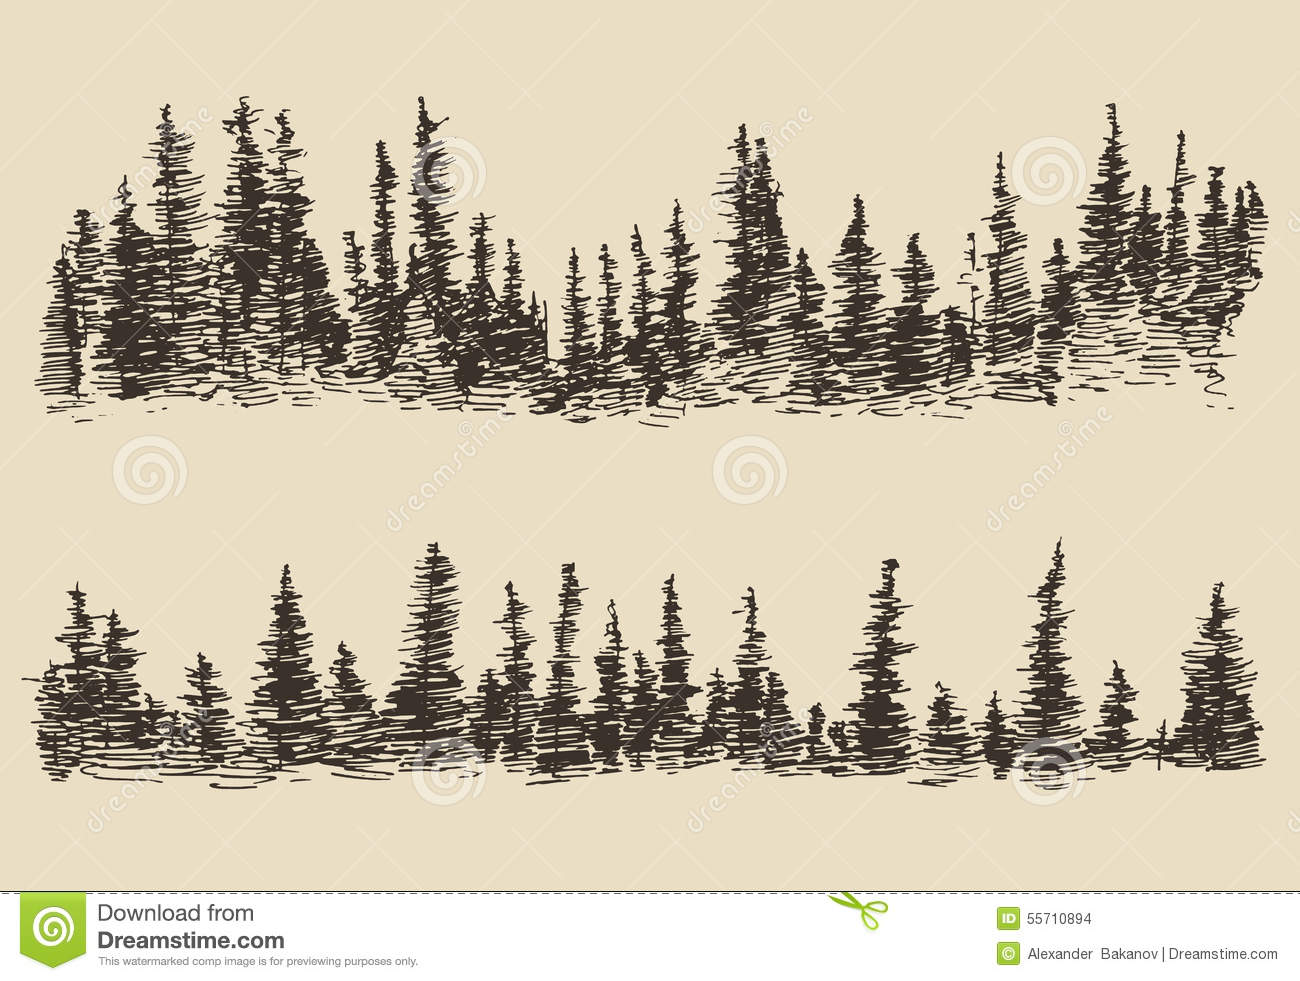 Mountains contours fir forest engraving vector stock for Forest scene drawing